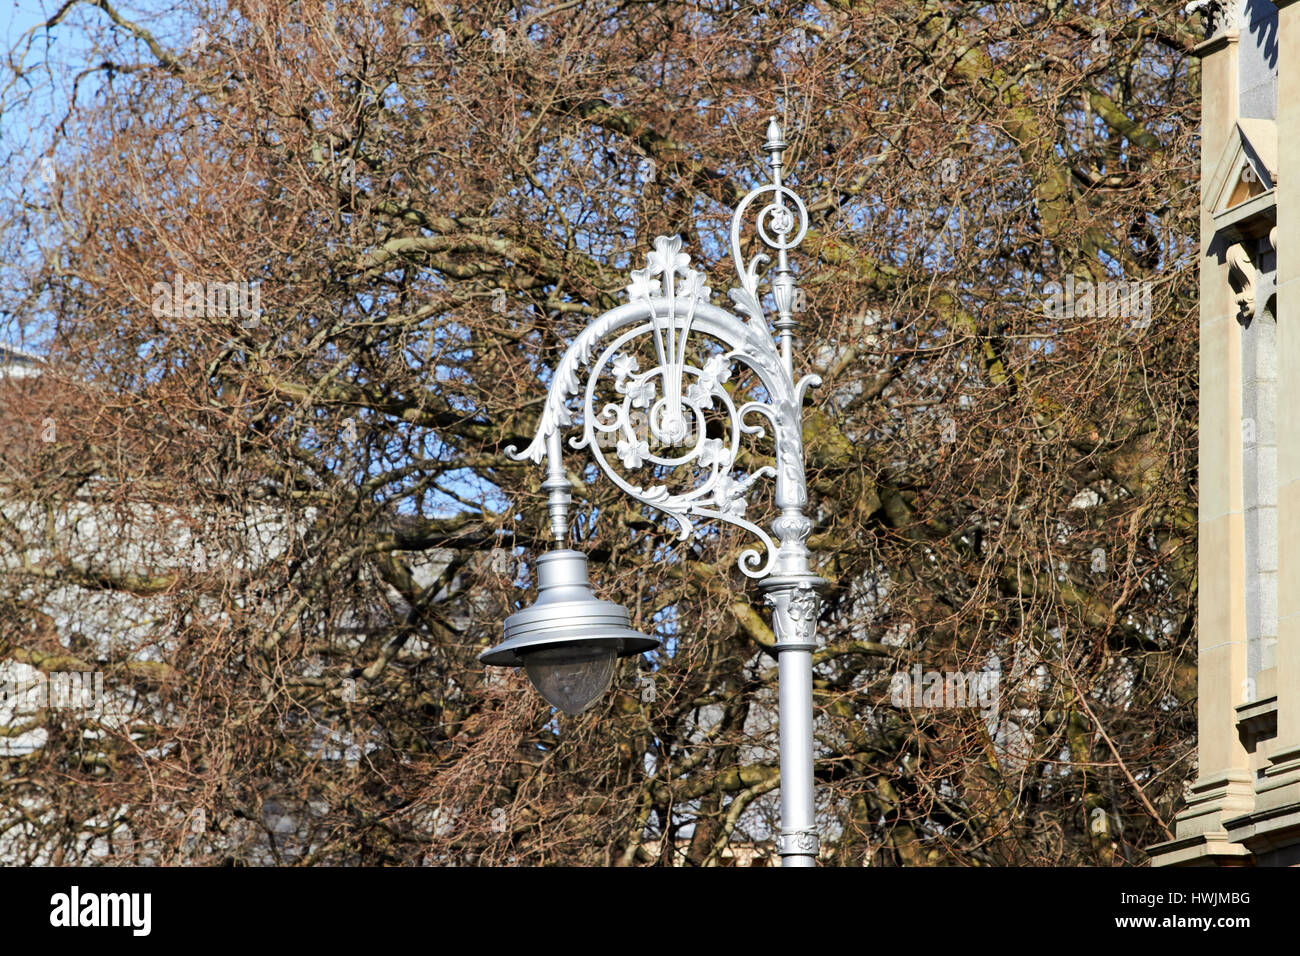 silver traditional swan neck light 23 cast iron lamp posts in Dublin Republic of Ireland - Stock Image